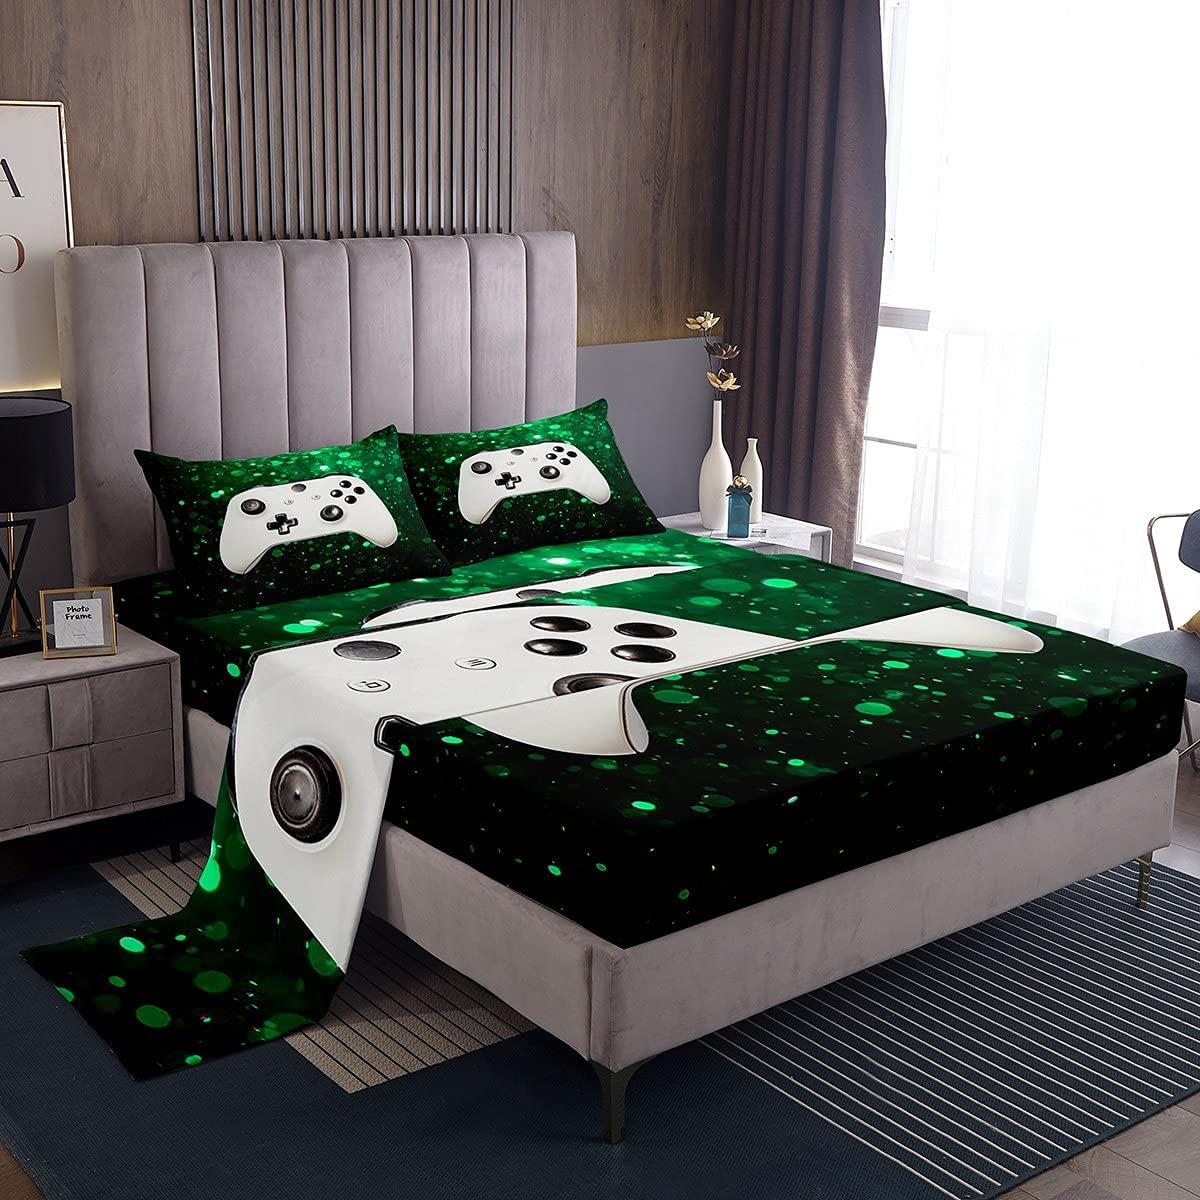 Gaming Wholesale Gamepad Gamer Fitted New sales Sheet Bedding Video Green Games Sets